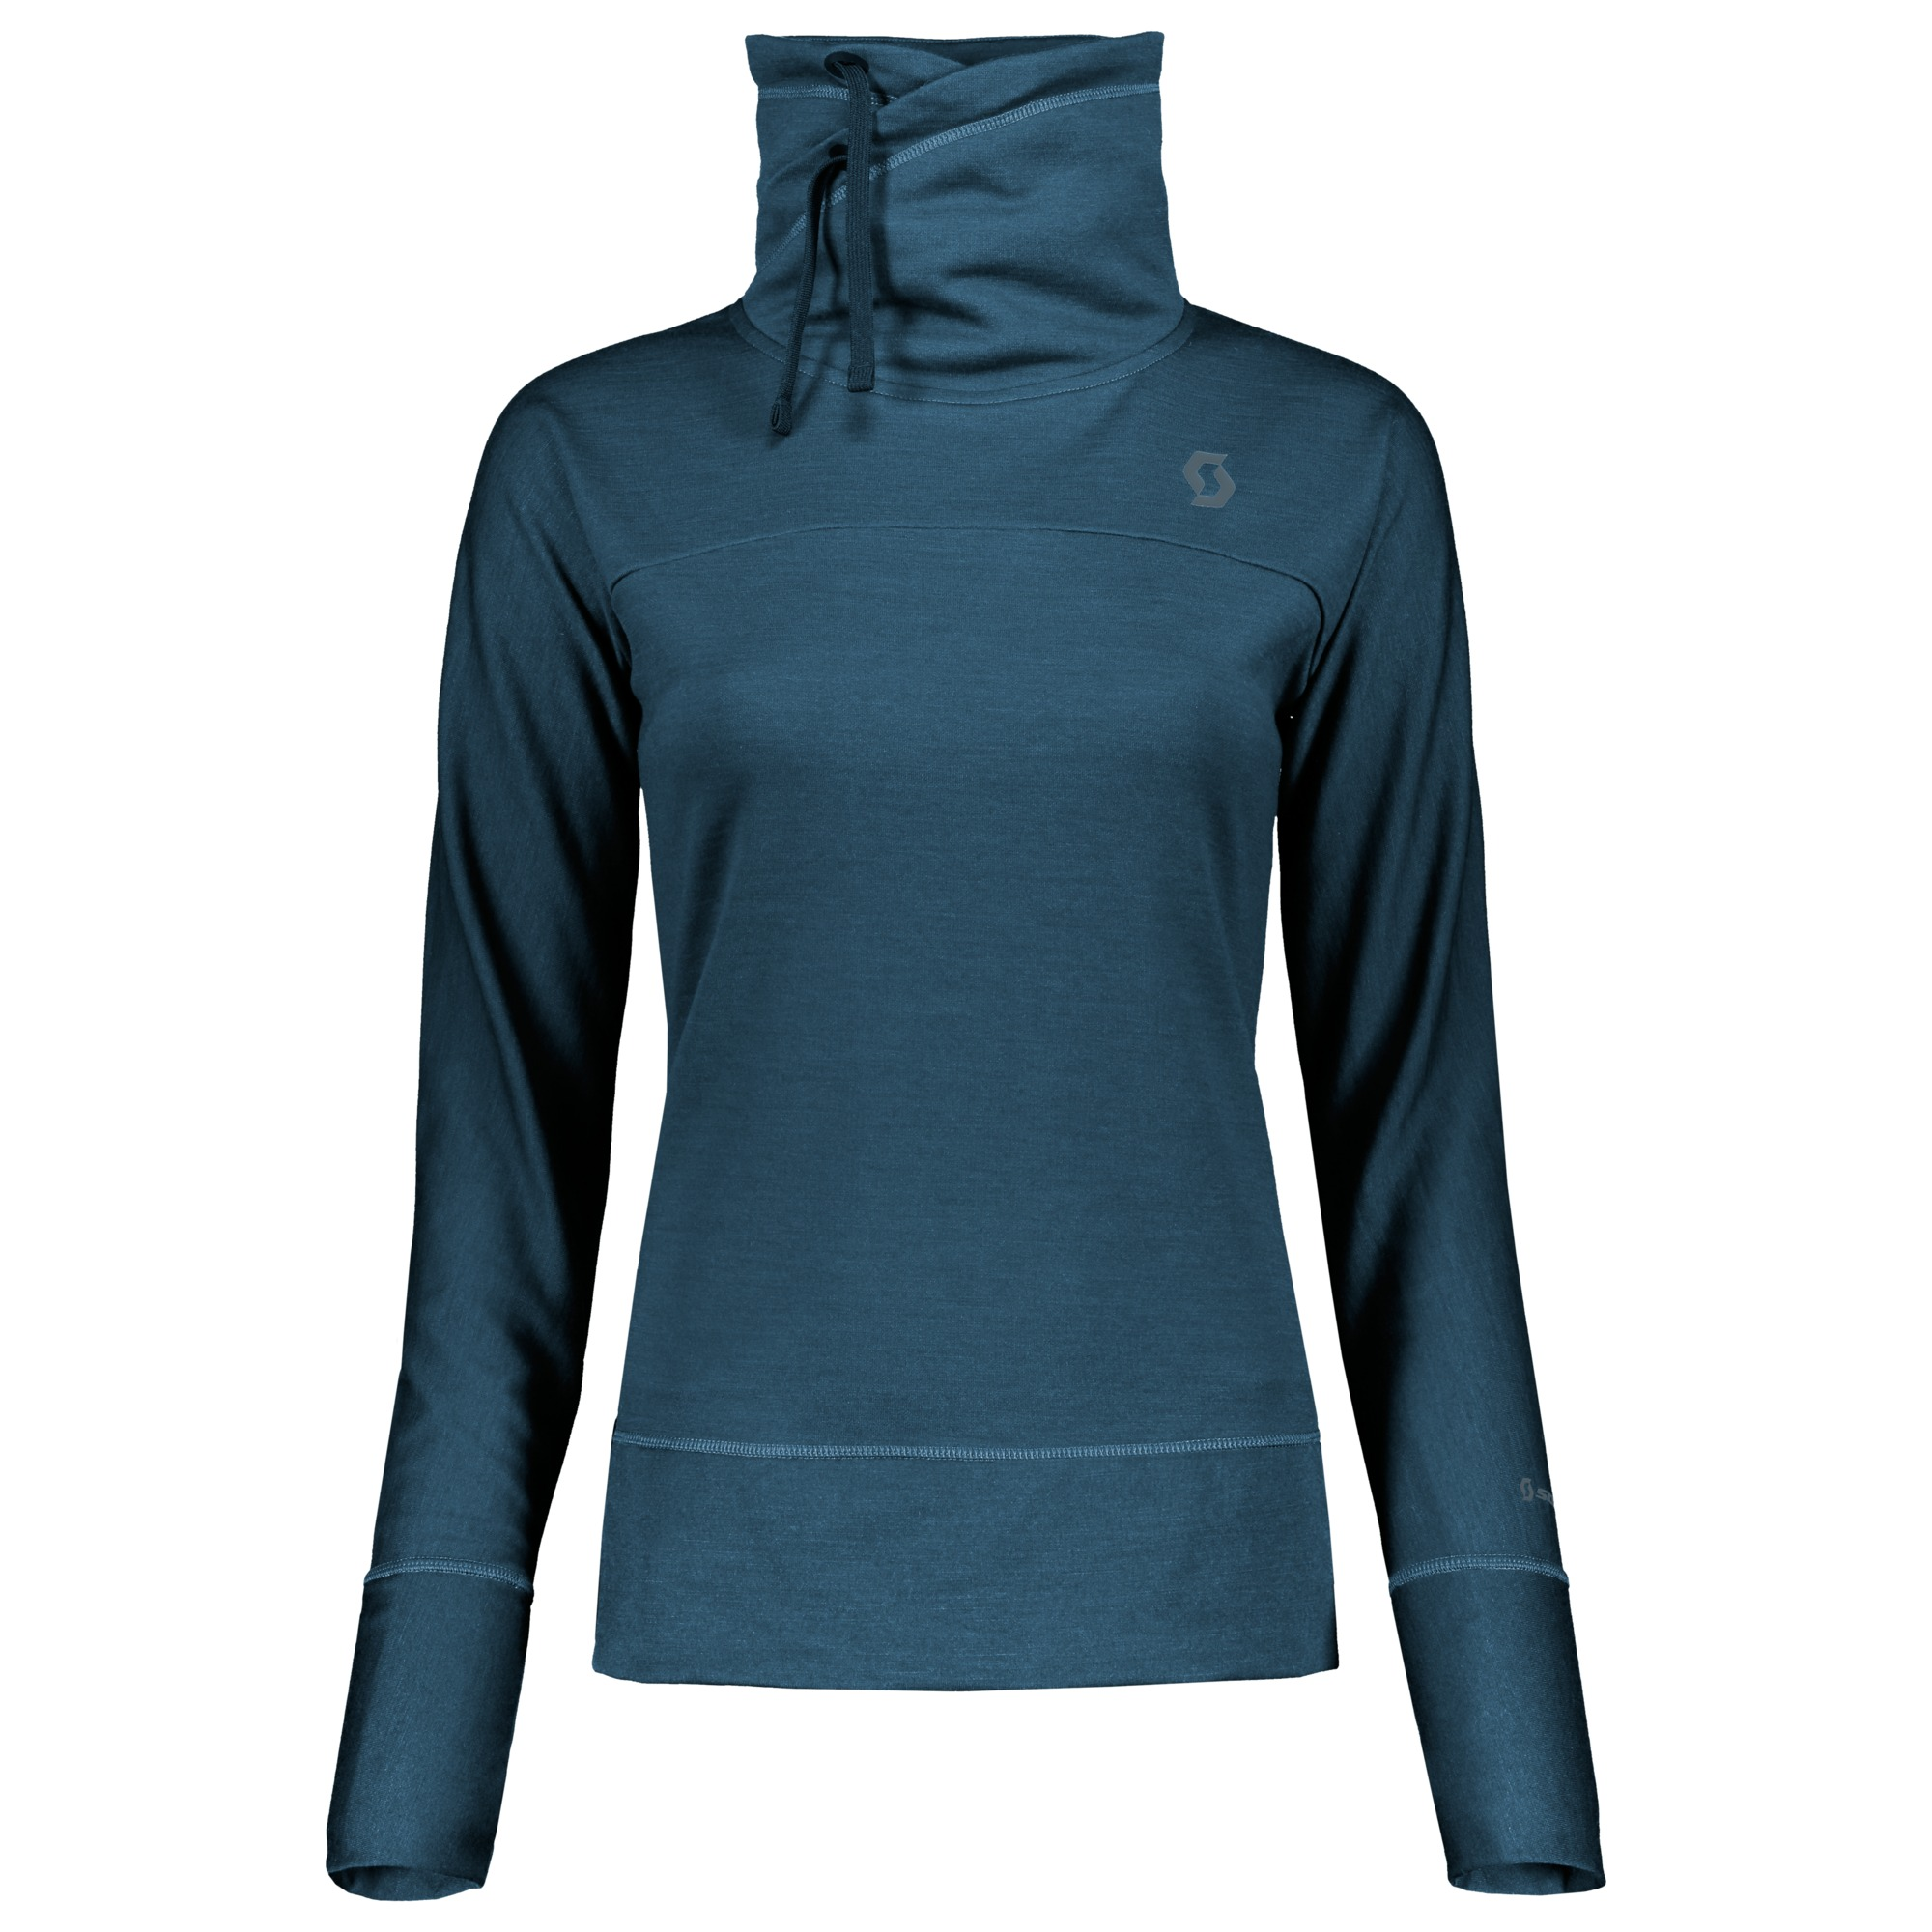 Pull-over femme SCOTT Defined Merino